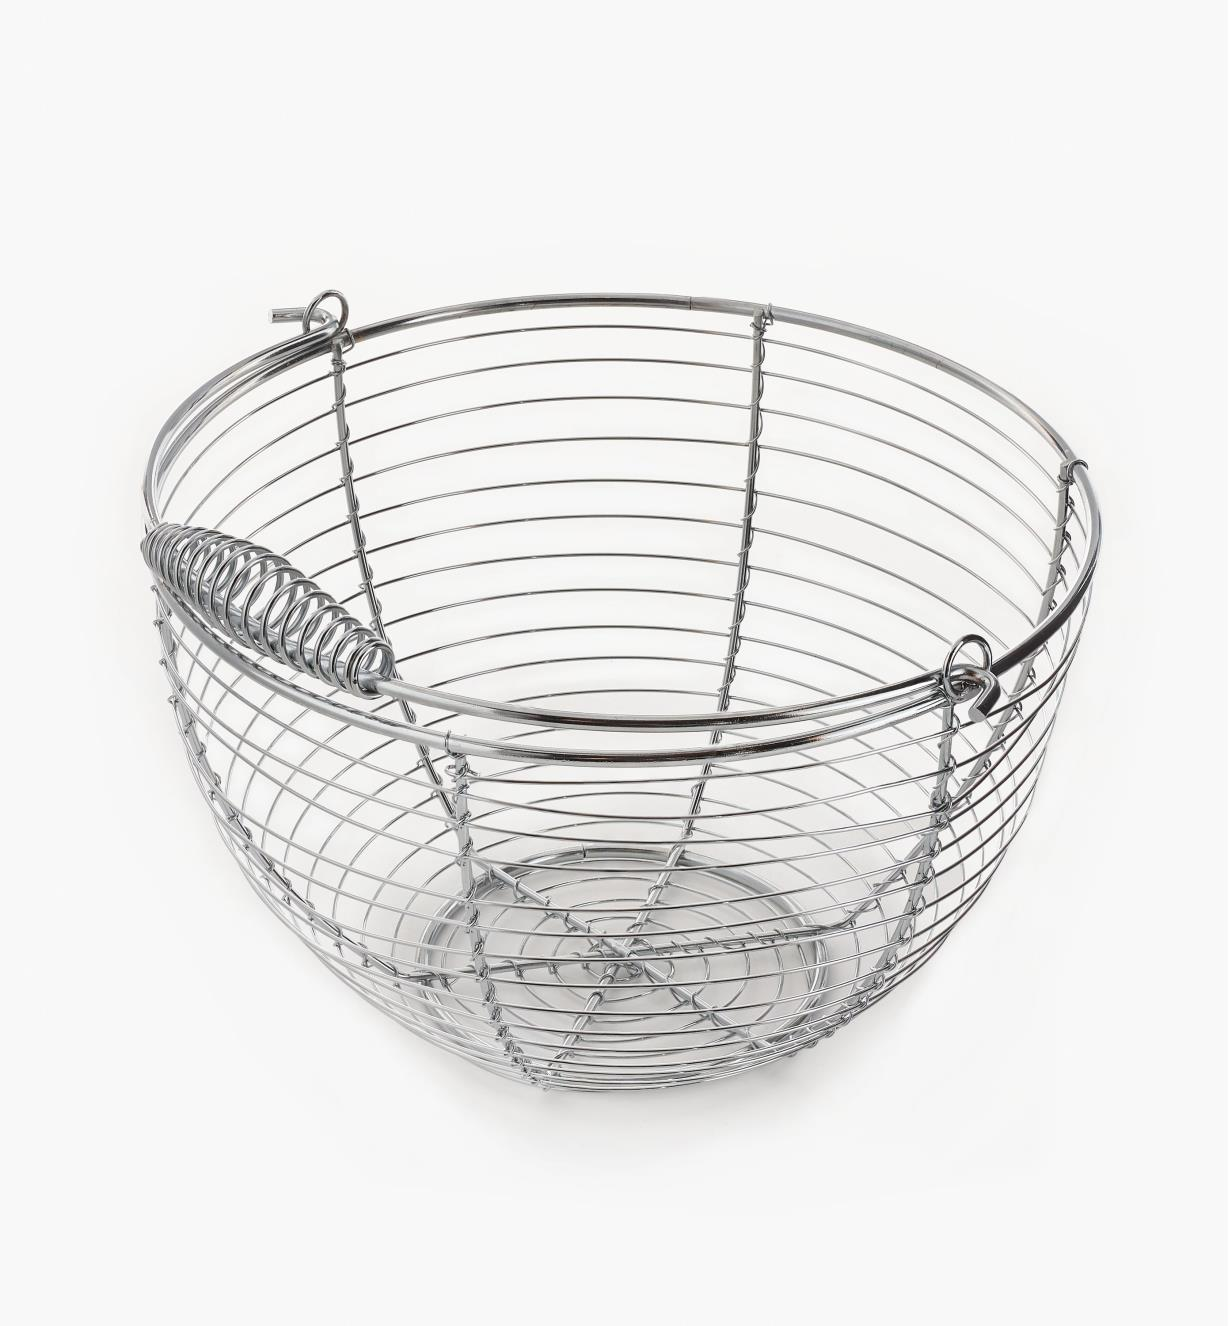 09A0467 - Small Gardener's Wash Basket